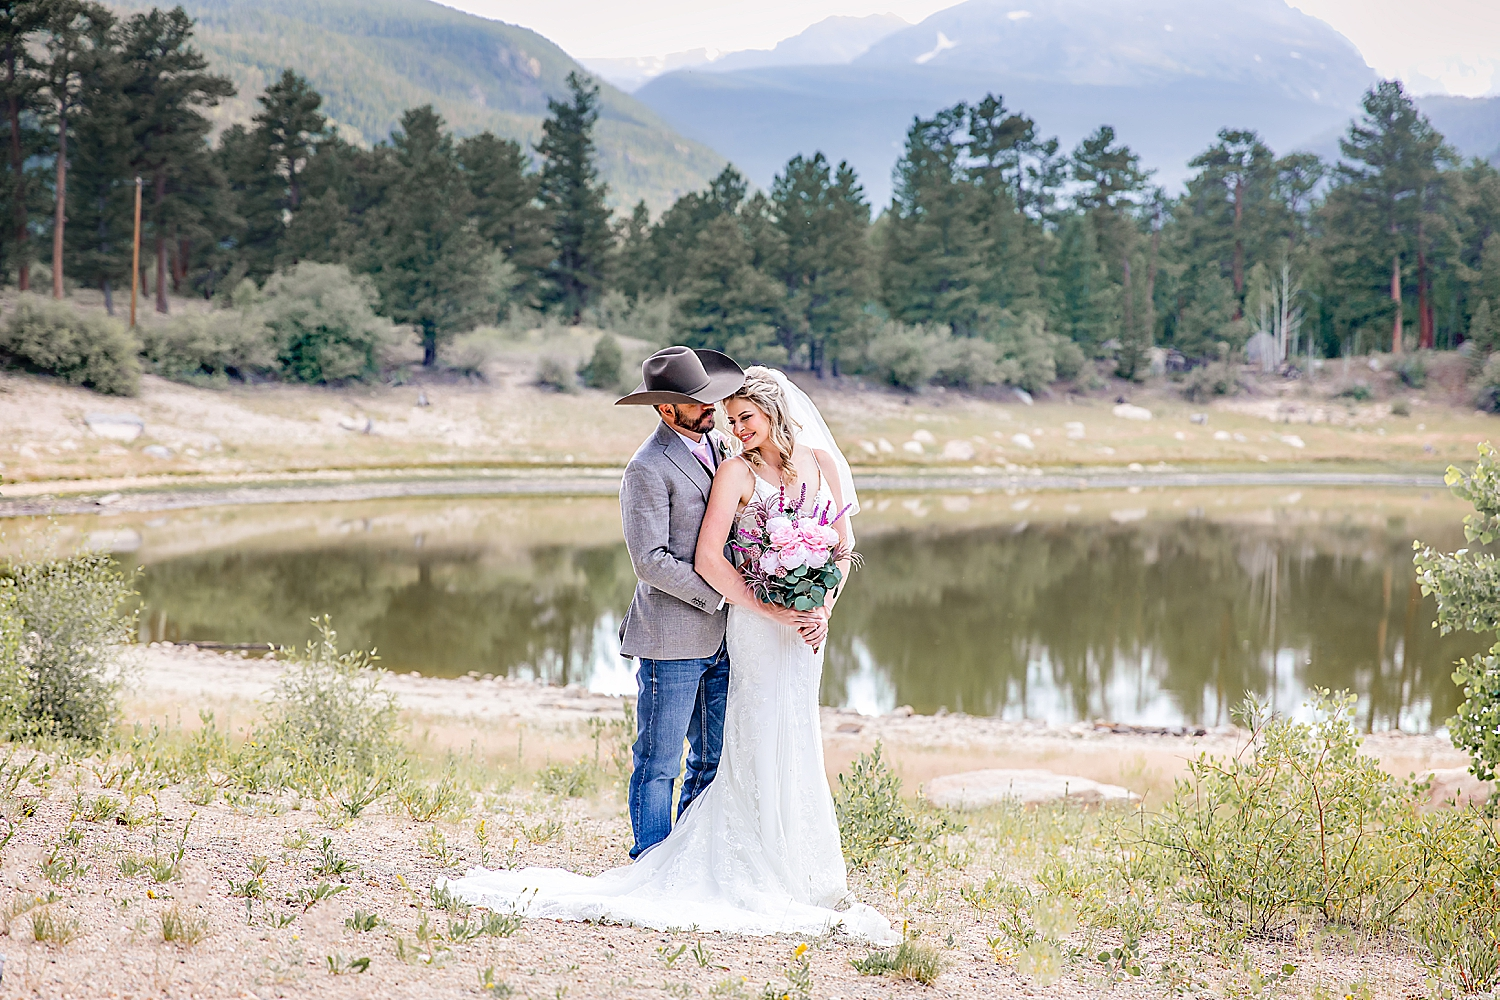 Carly-Barton-Photography-Rocky-Mountain-National-Park-Estes-Park-Wedding-Elopement_0027.jpg